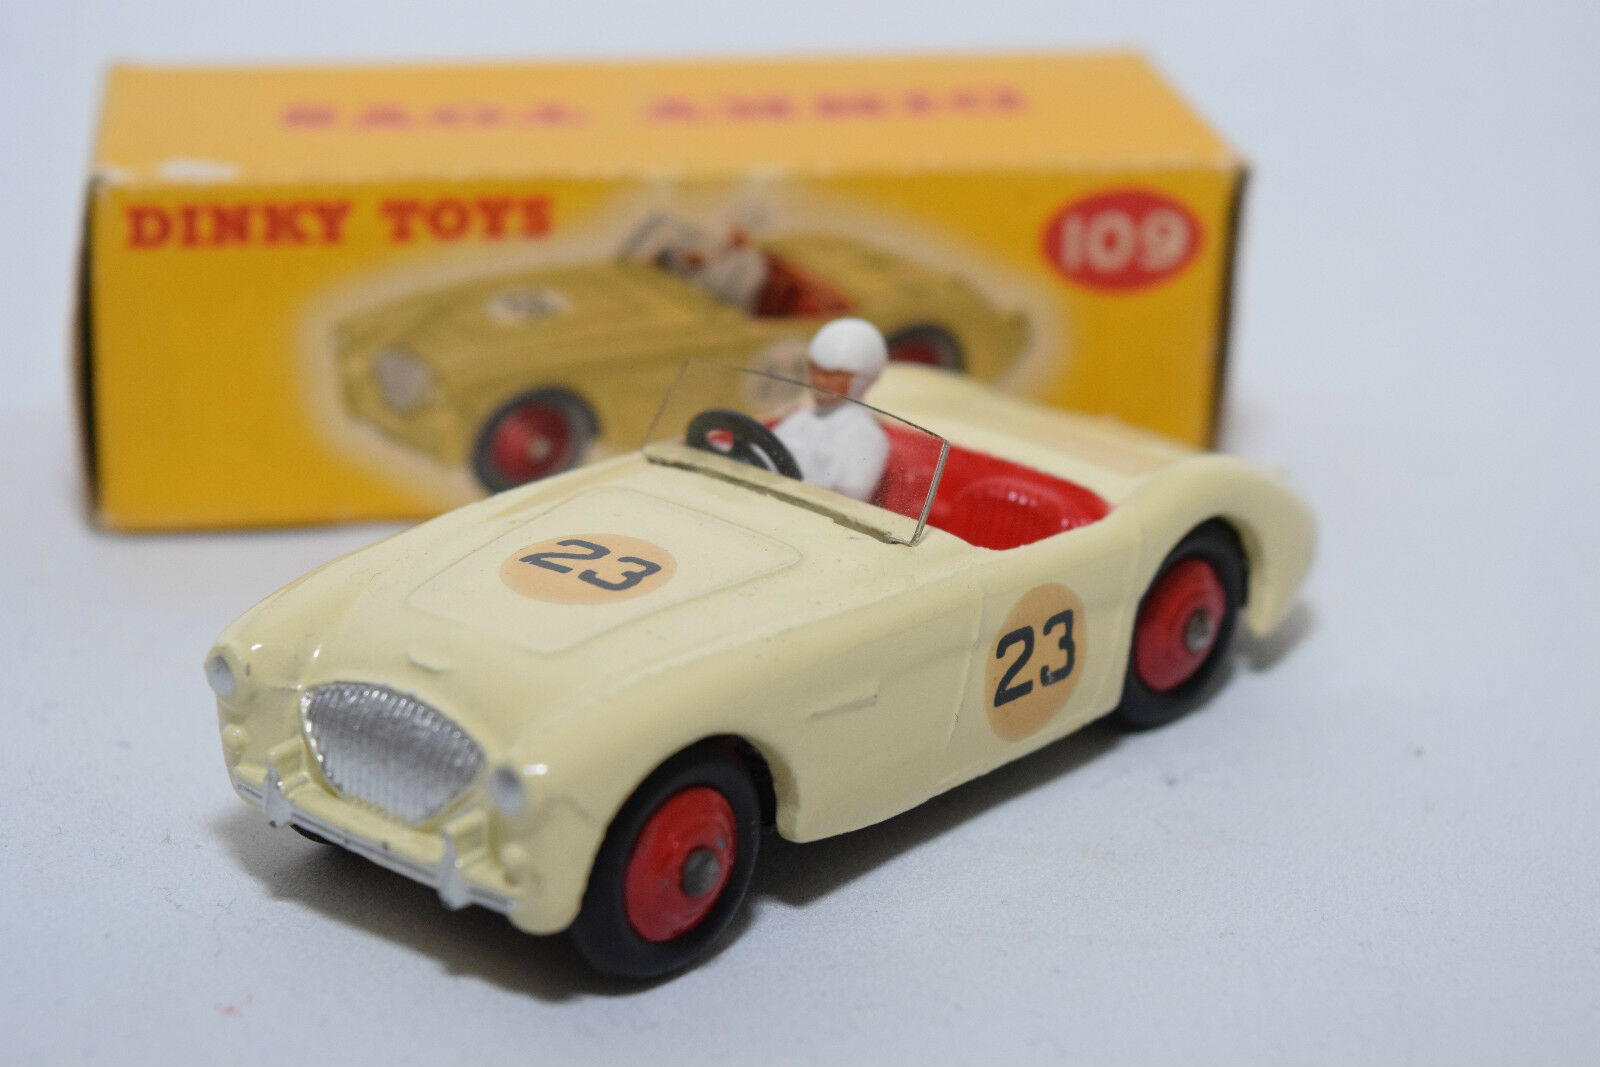 P Dinky Toys 1109 austin healey 100 Sports Cream Mint Boxed rare raras